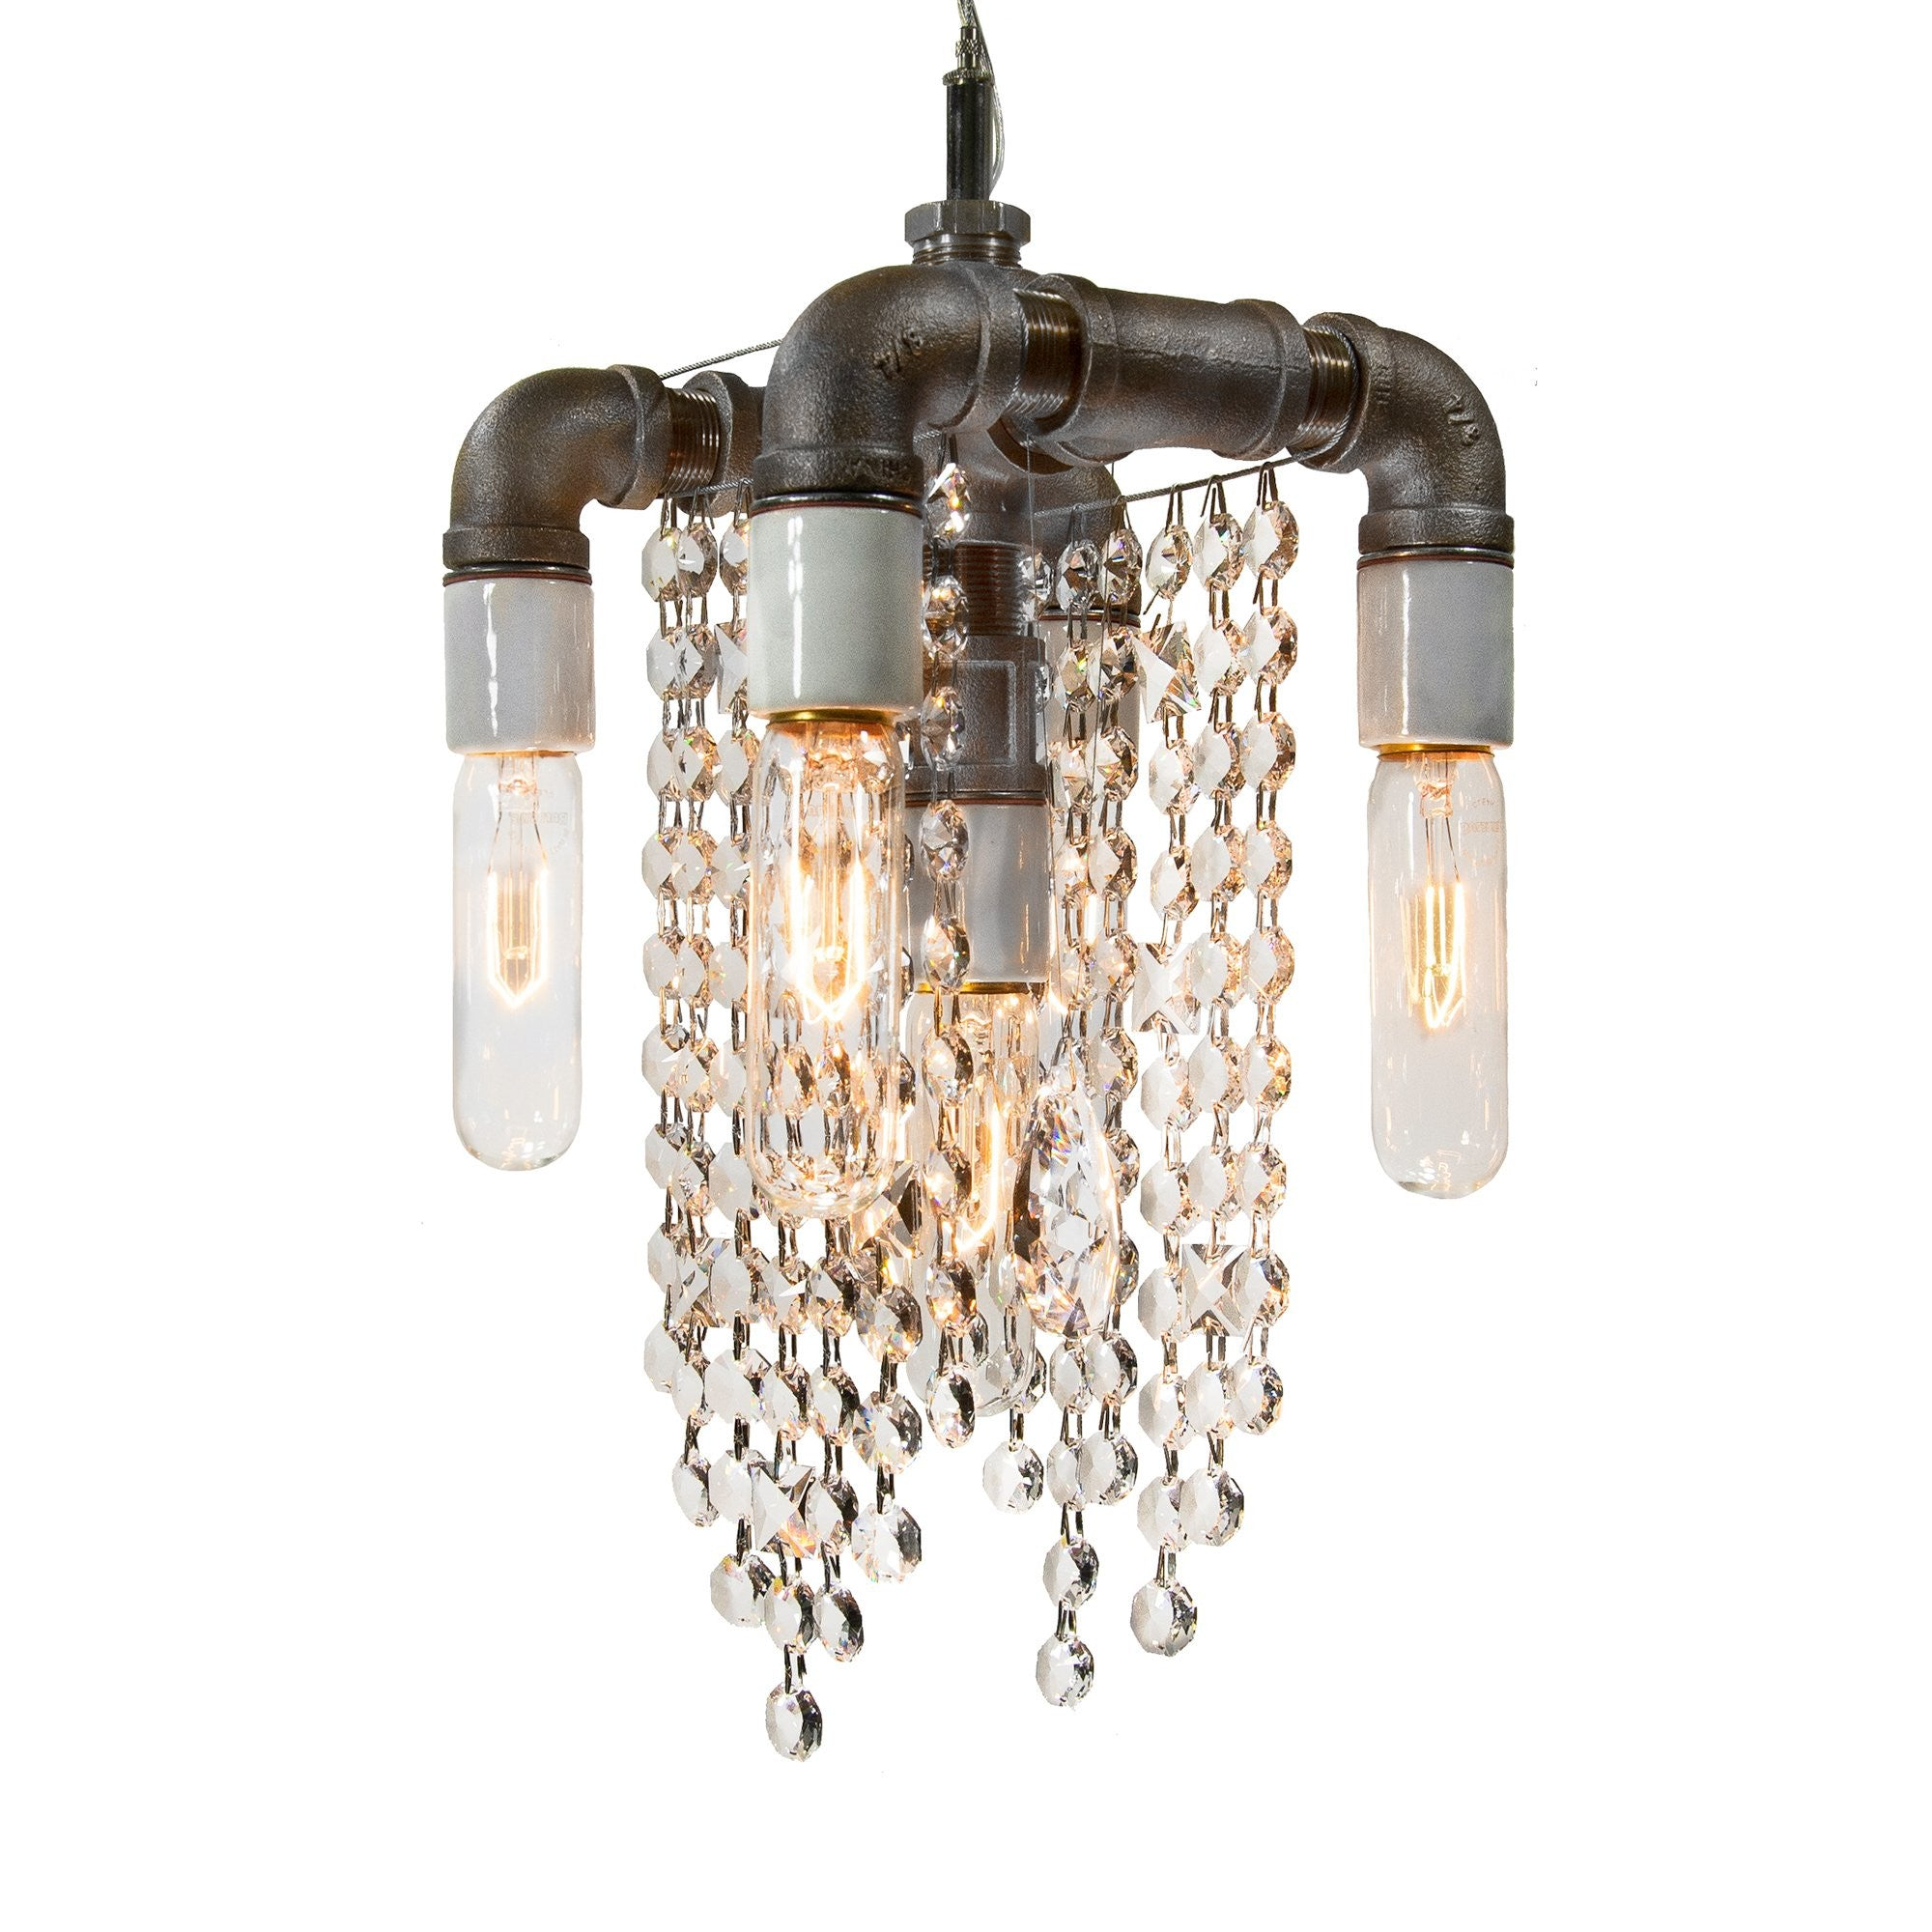 Industrial Collection Five Bulb Compact Pendant Chandelier